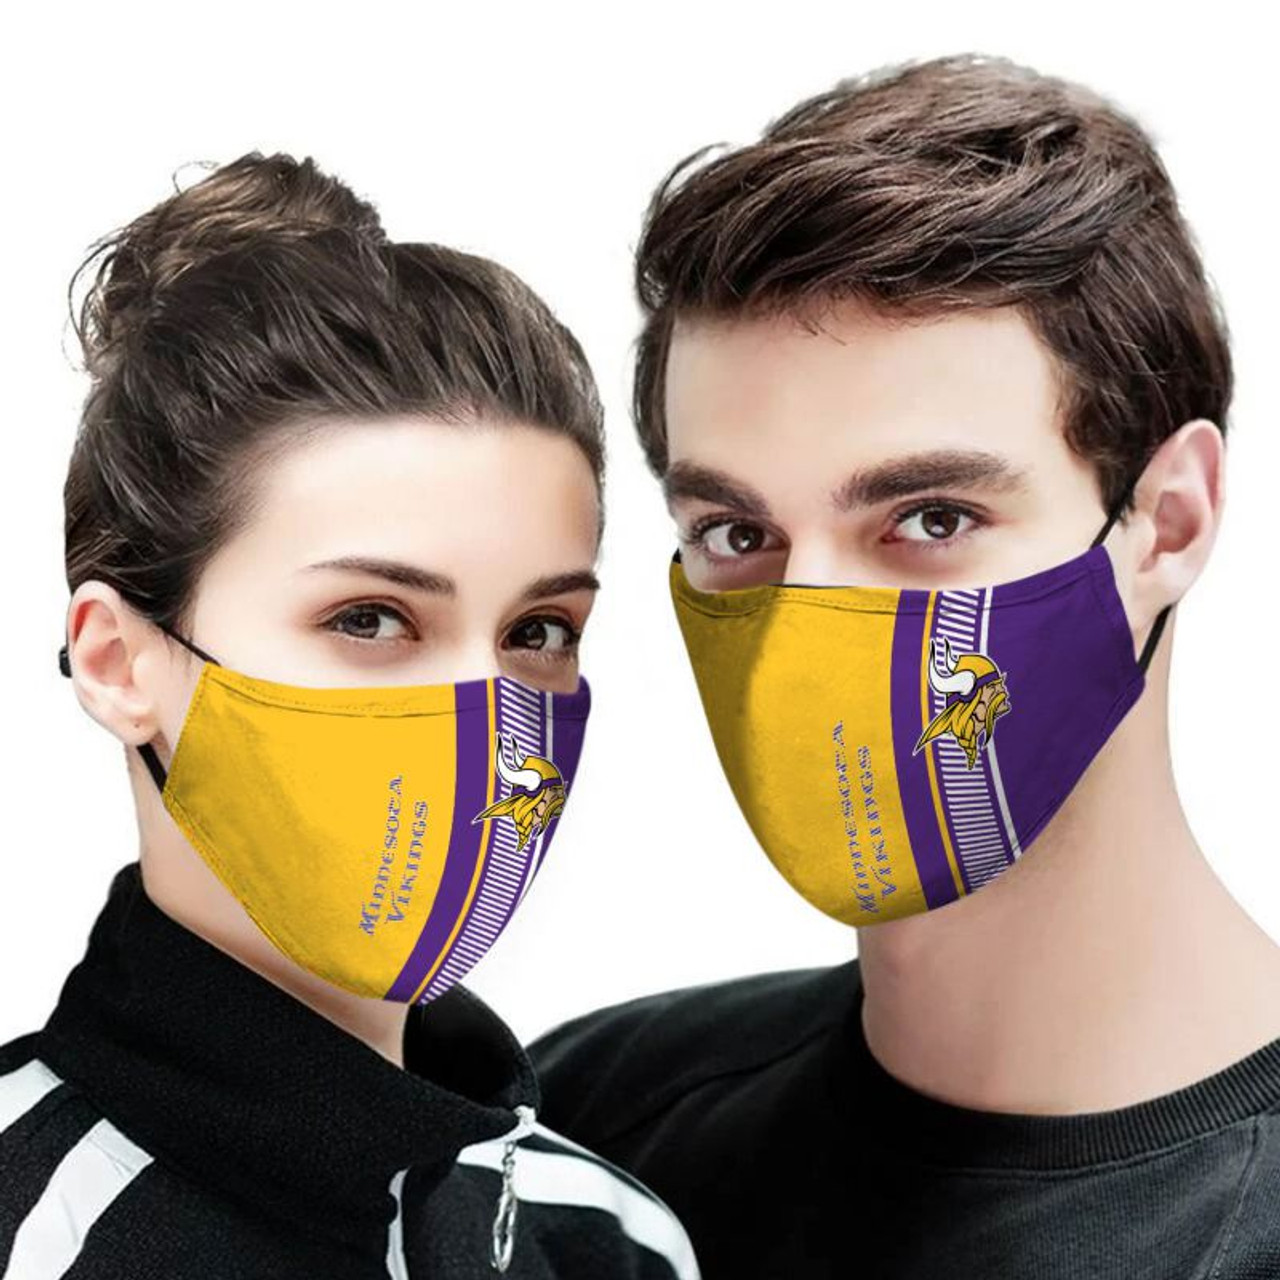 **(OFFICIAL-MINNESOTA-VIKINGS-TEAM CUSTOM-3D-PRINTED DESIGNS/BREATHABLE PM2.5 FILTER BACTERIA/VIRUS PROOF & ANTI DUST PROOF WITH-ADJUSTABLE TIE-BACKS/REUSABLE-MACHINE-WASHABLE CUSTOM FACE MASKS/ALL-ADJUSTABLE-NOSE-CLIPS & INSIDE-5-LAYERED-FILTERS)**